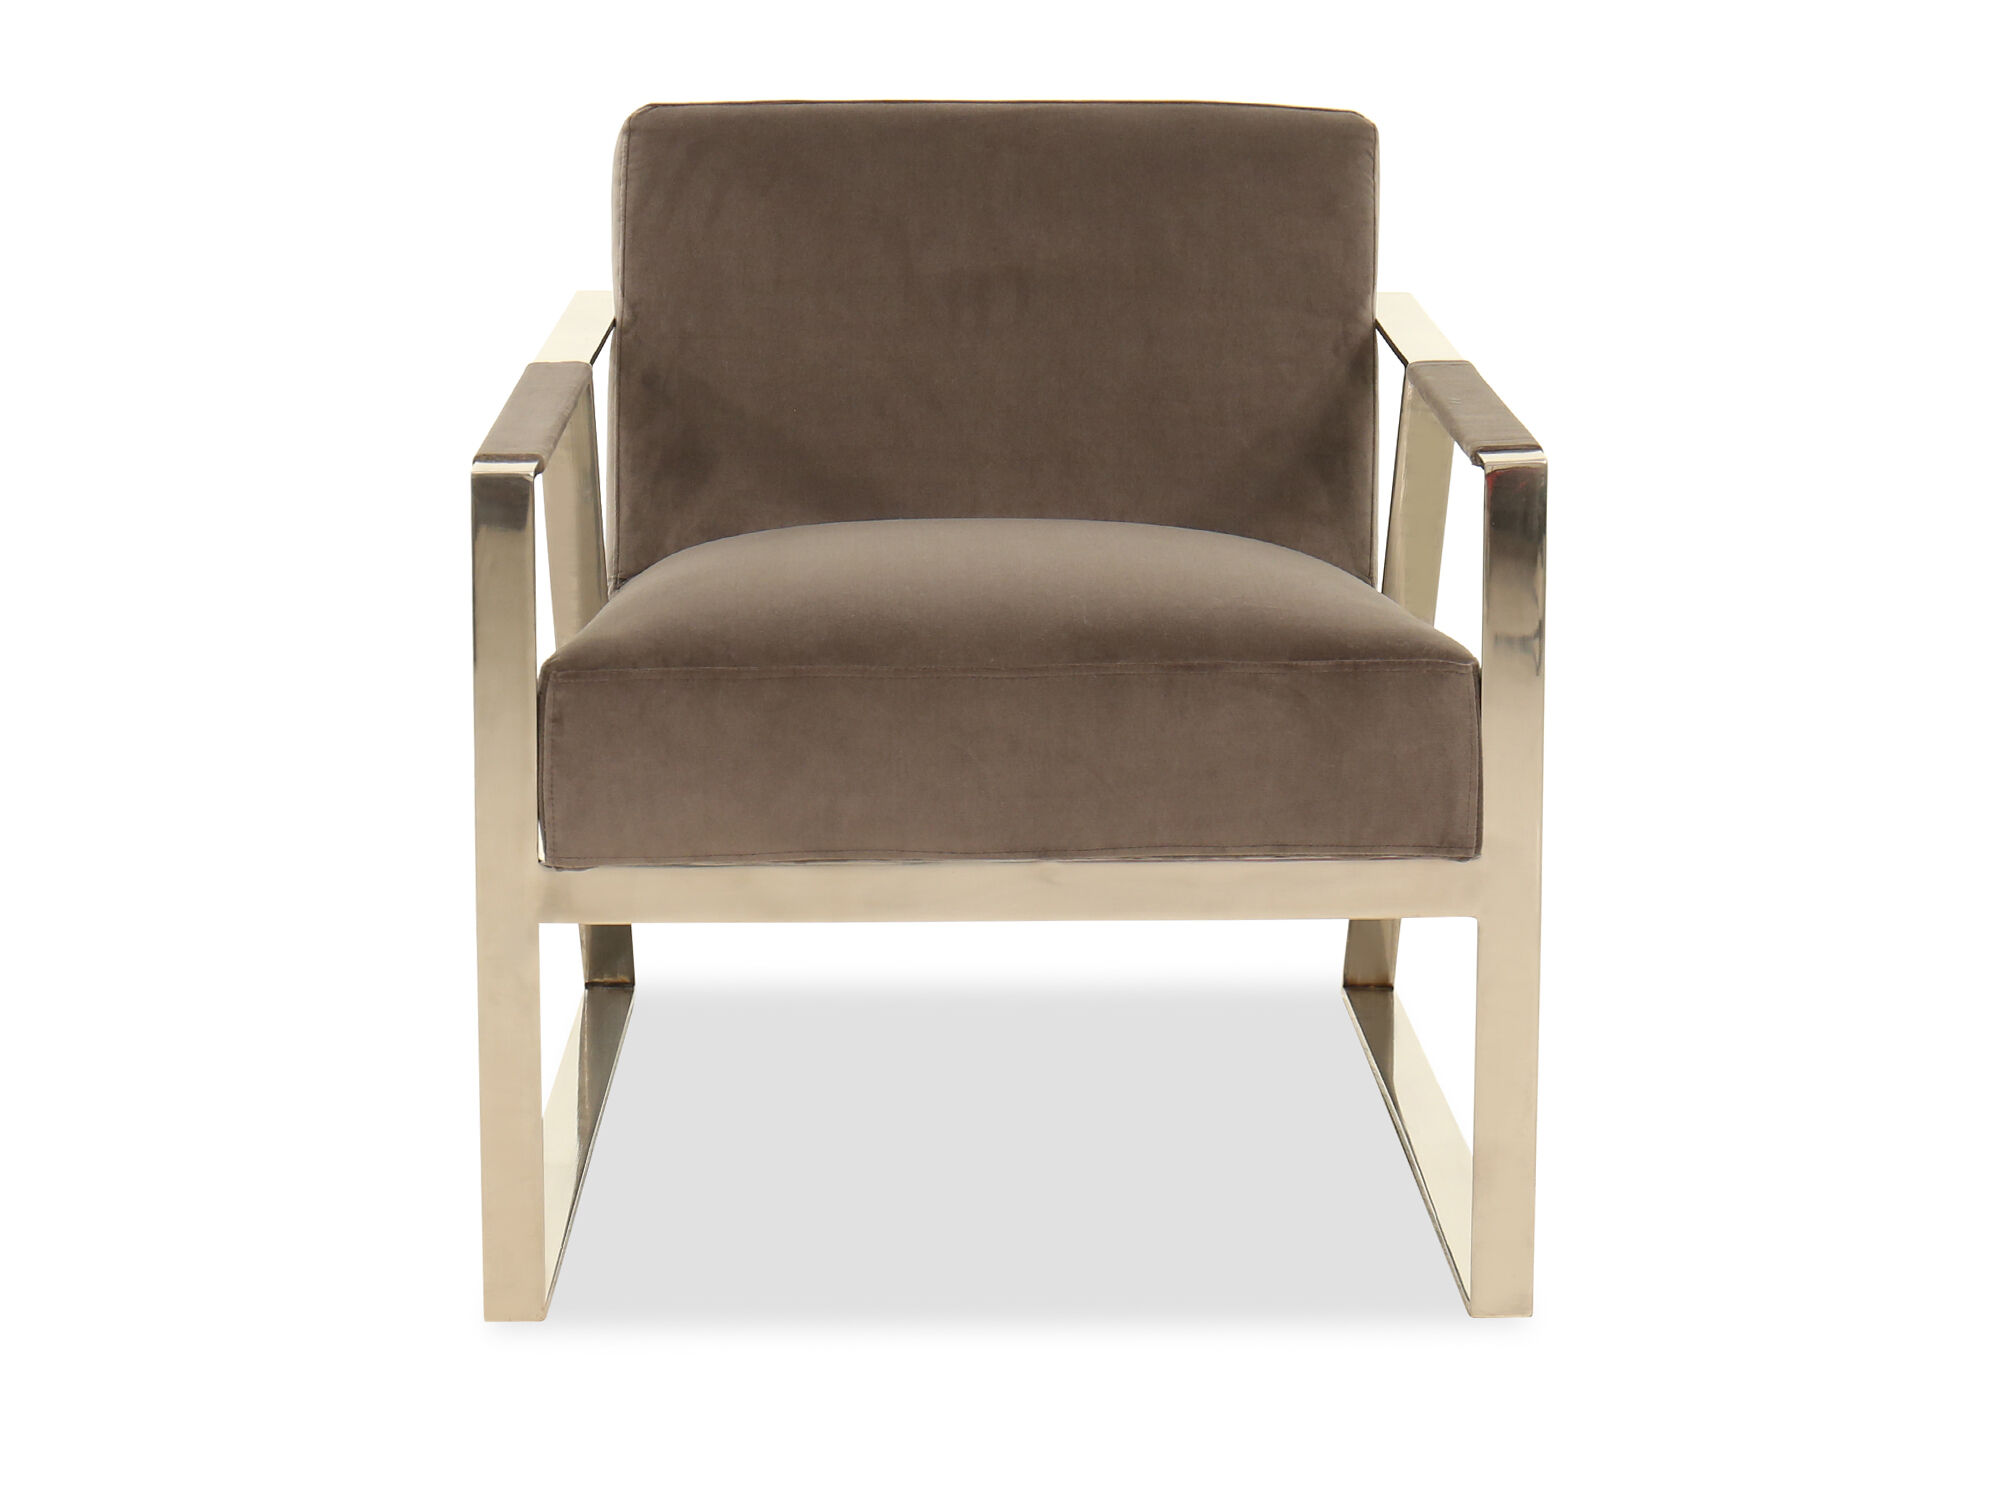 LowProfile Lounge Chair in Gray  Mathis Brothers Furniture